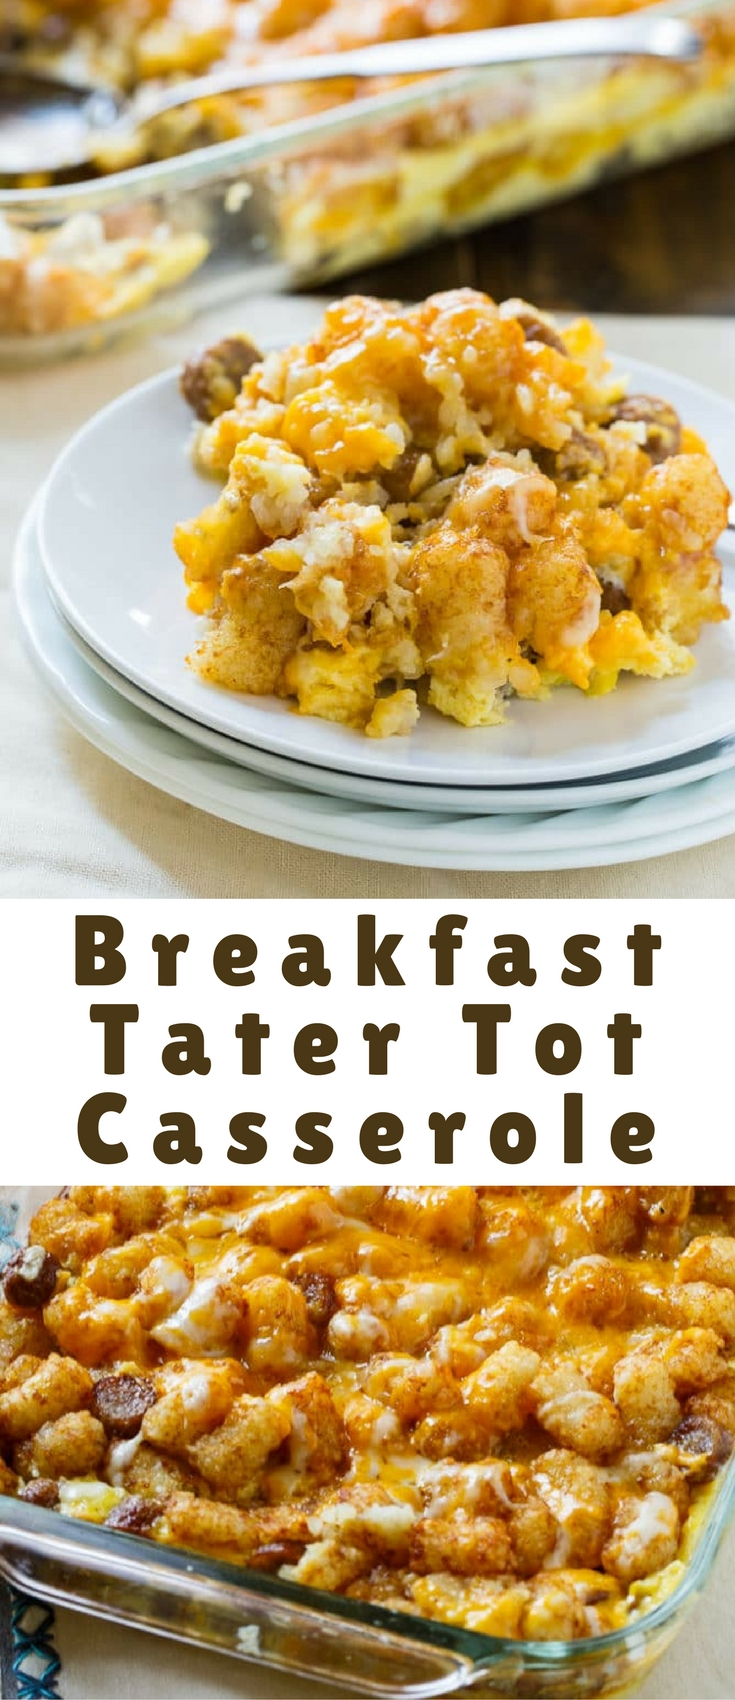 Breakfast Tater Tot Casserole is super easy to throw together for a weekend breakfast. It's full of cheese, sausage, and eggs making it a one dish meal.